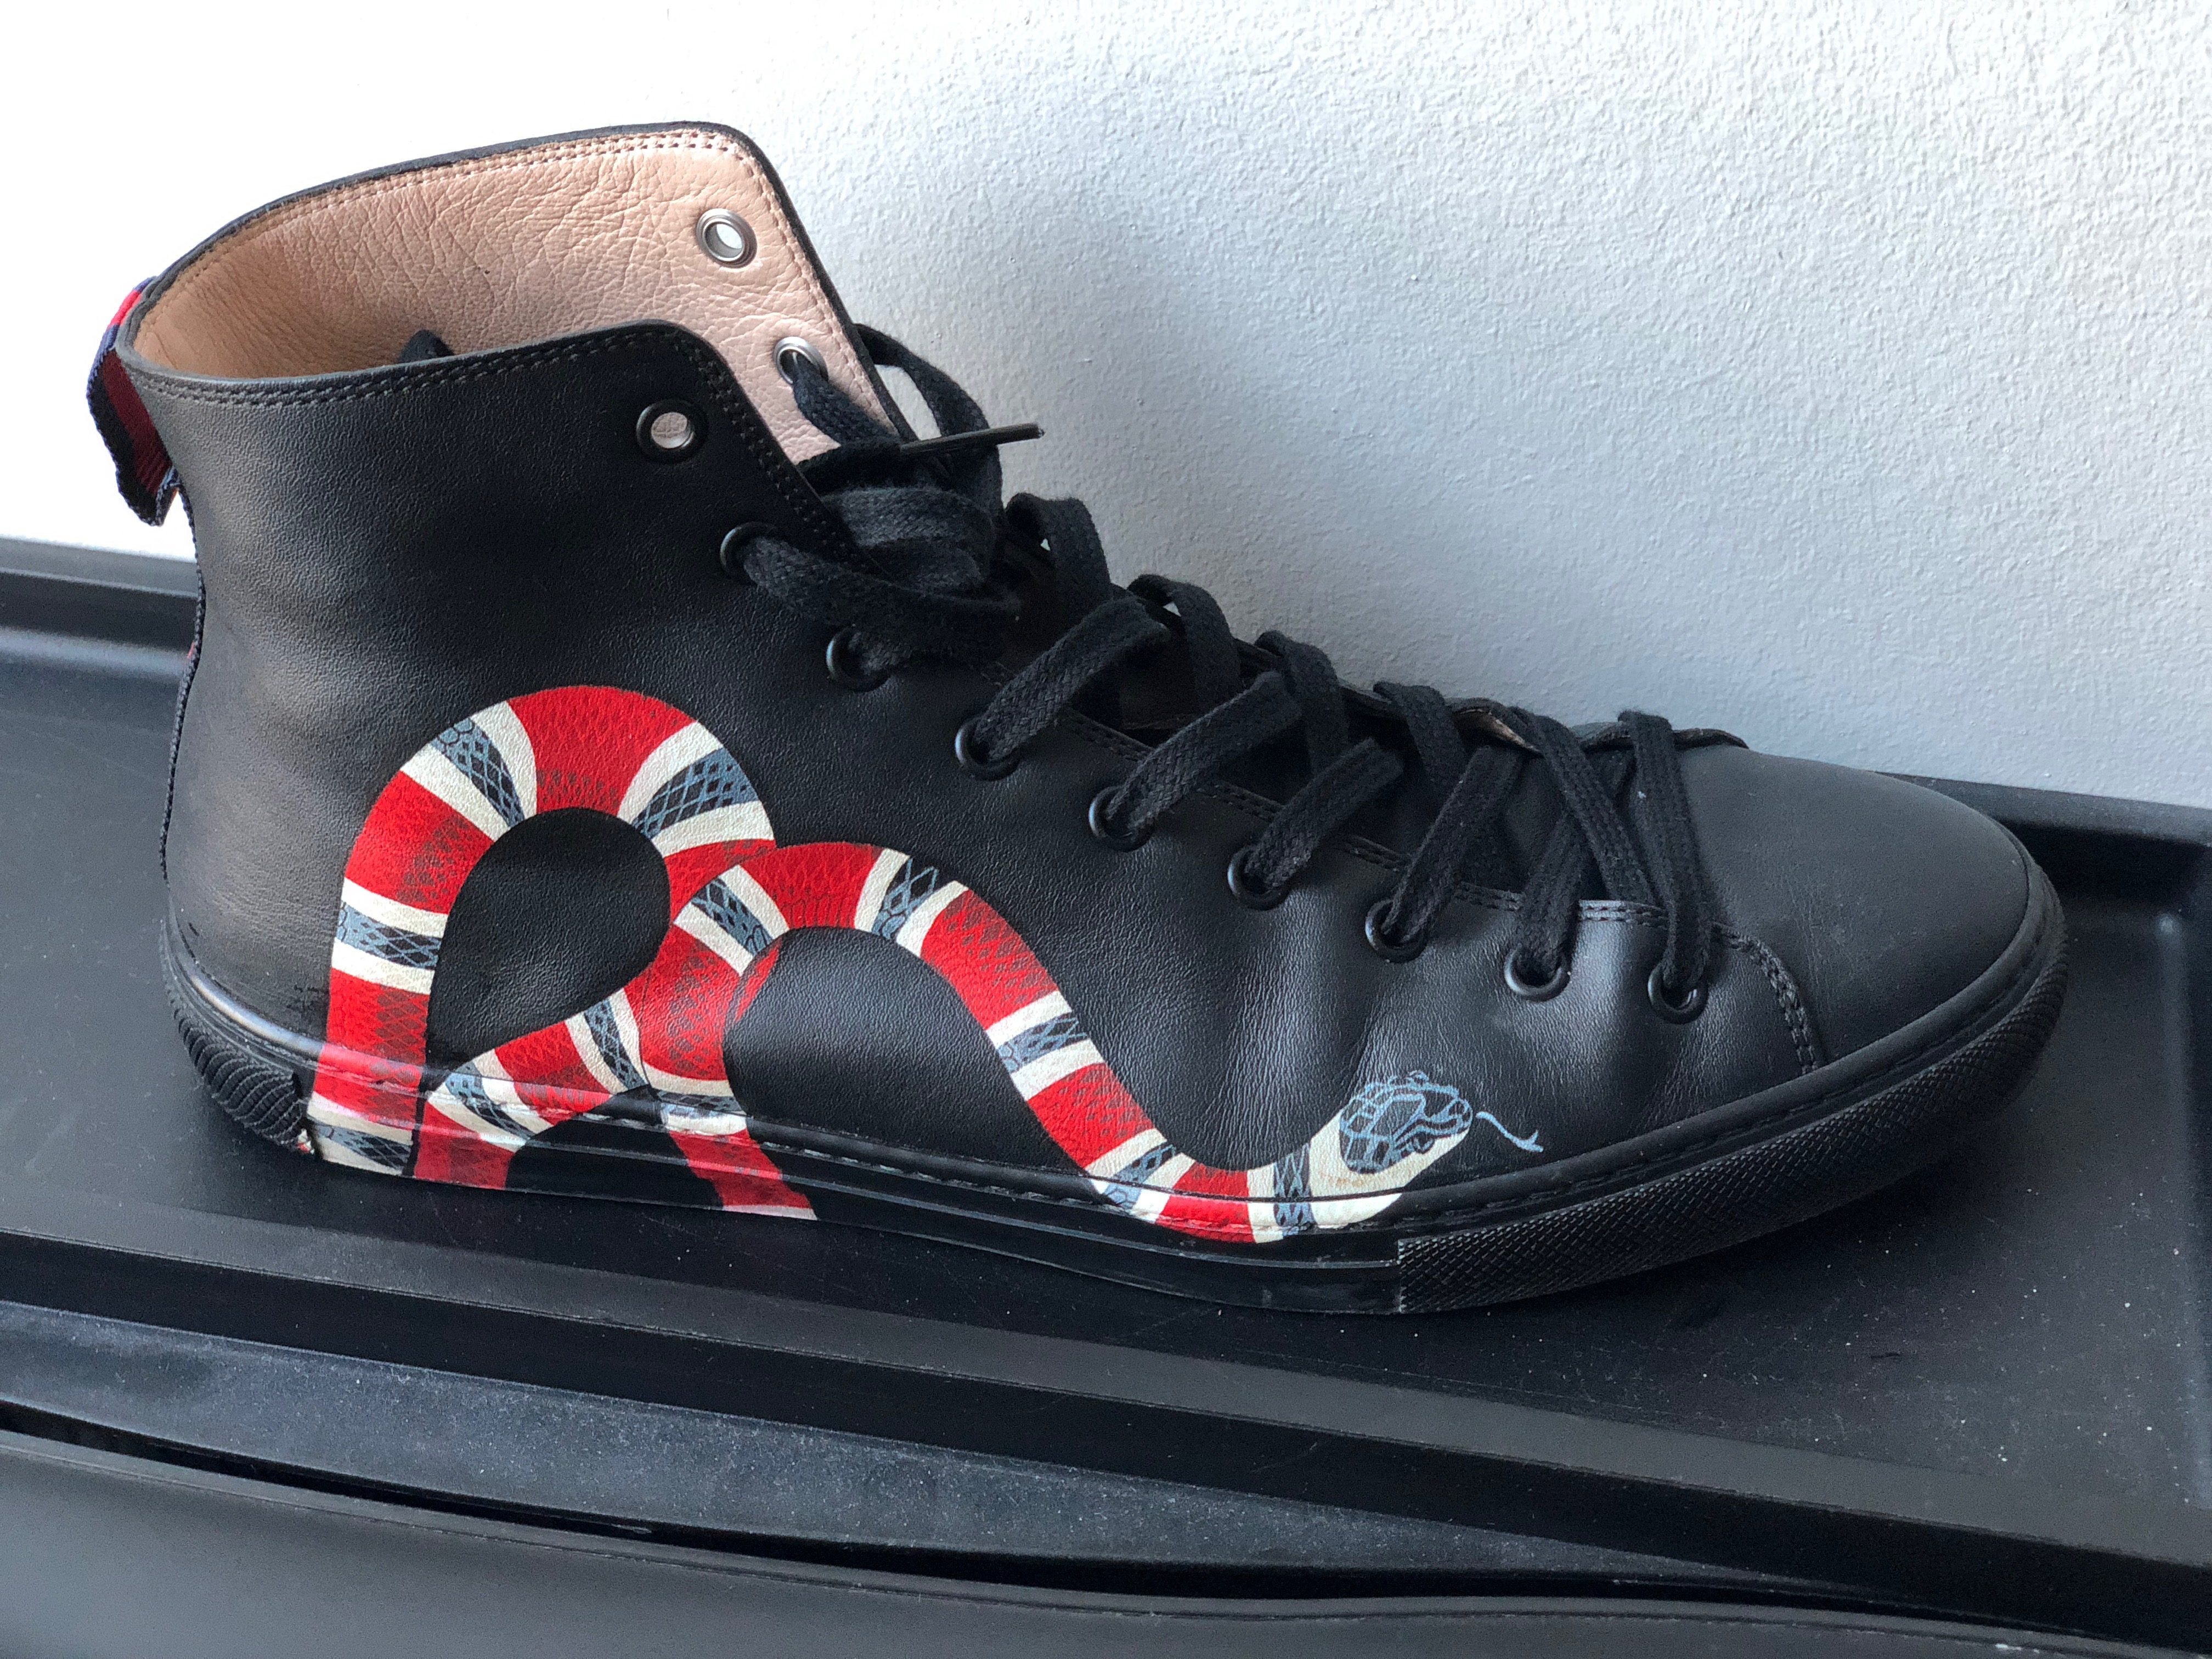 cd39e19fd8a Gucci Gucci Snake High Top Size 8.5 - Hi-Top Sneakers for Sale - Grailed